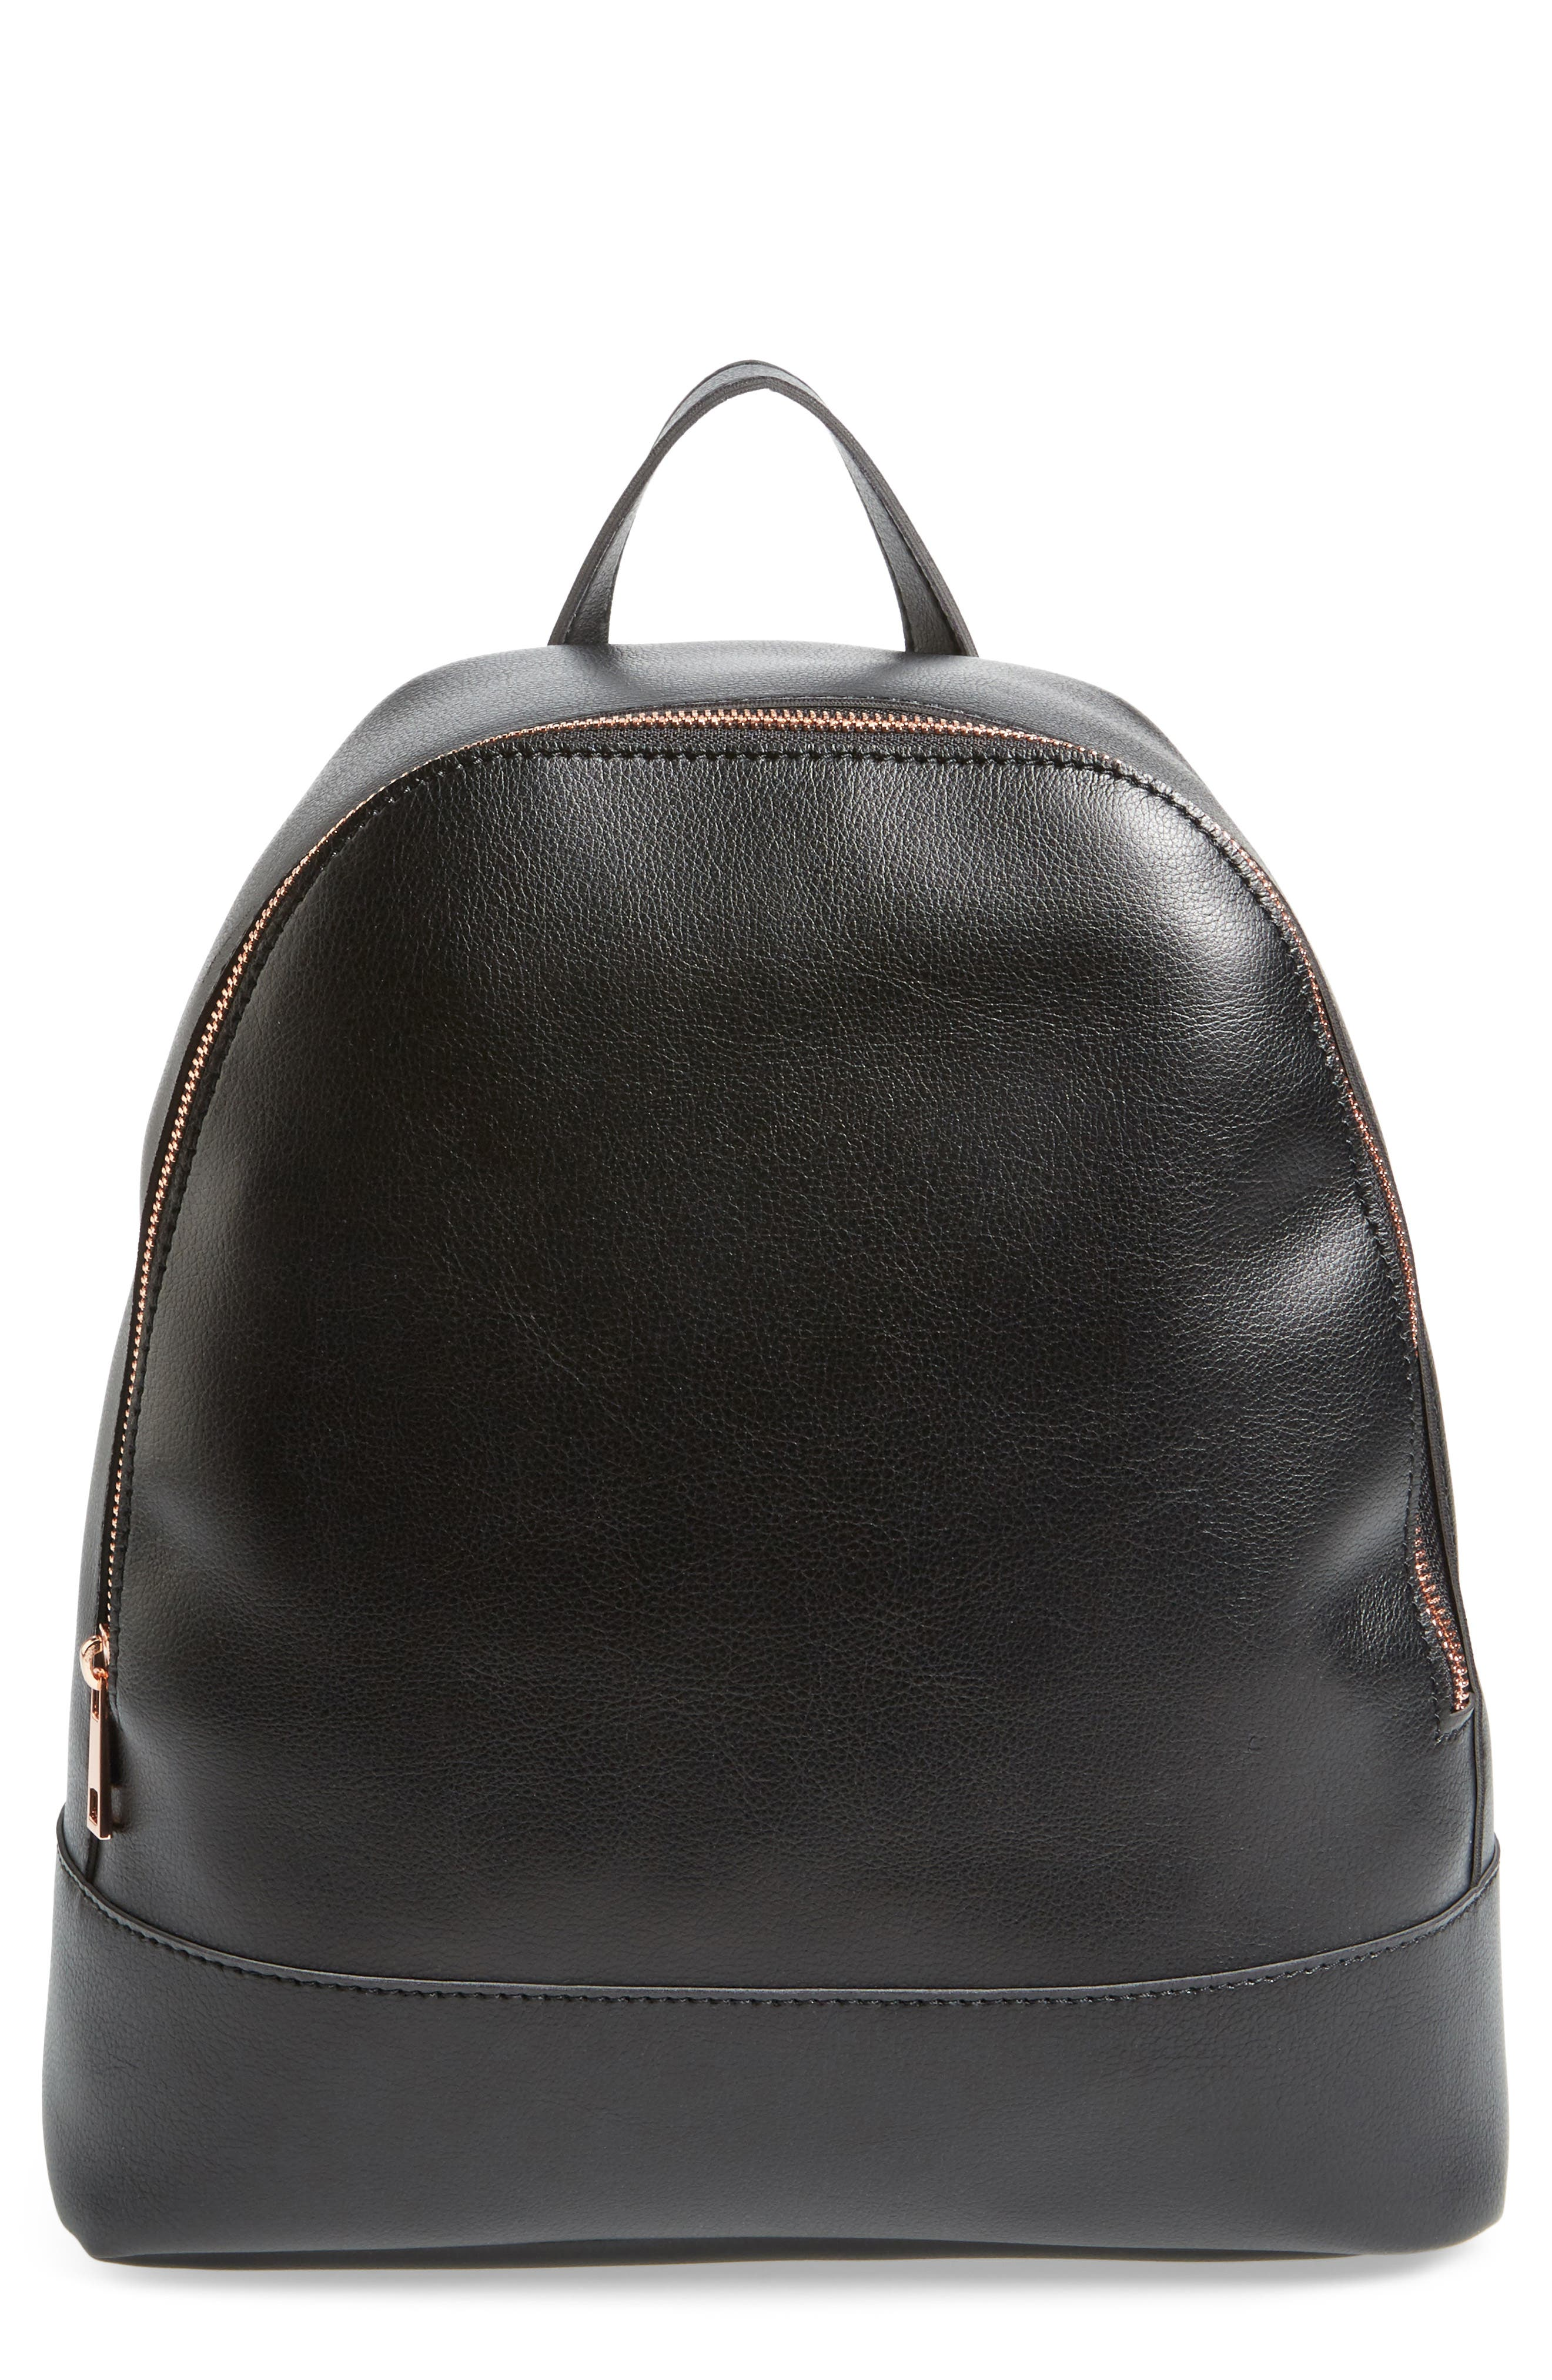 Chester Faux Leather Backpack,                             Main thumbnail 1, color,                             001